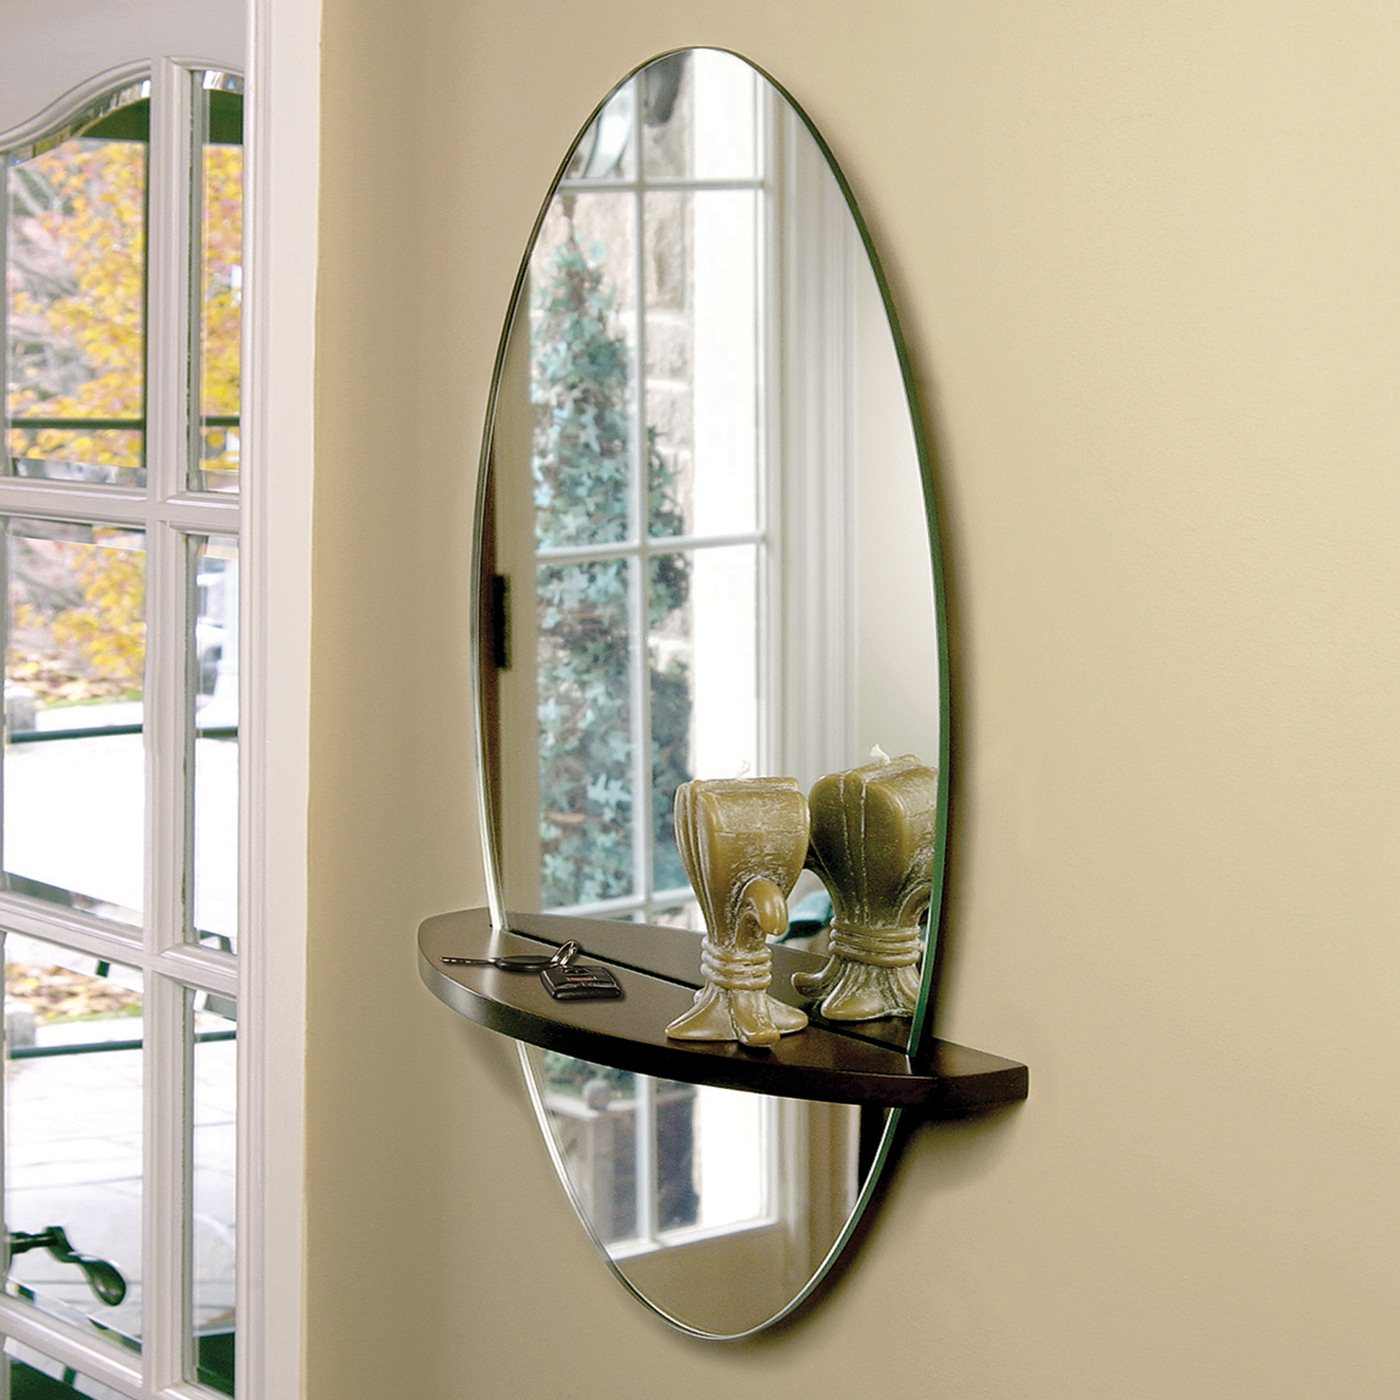 Wall mirror decorating ideas